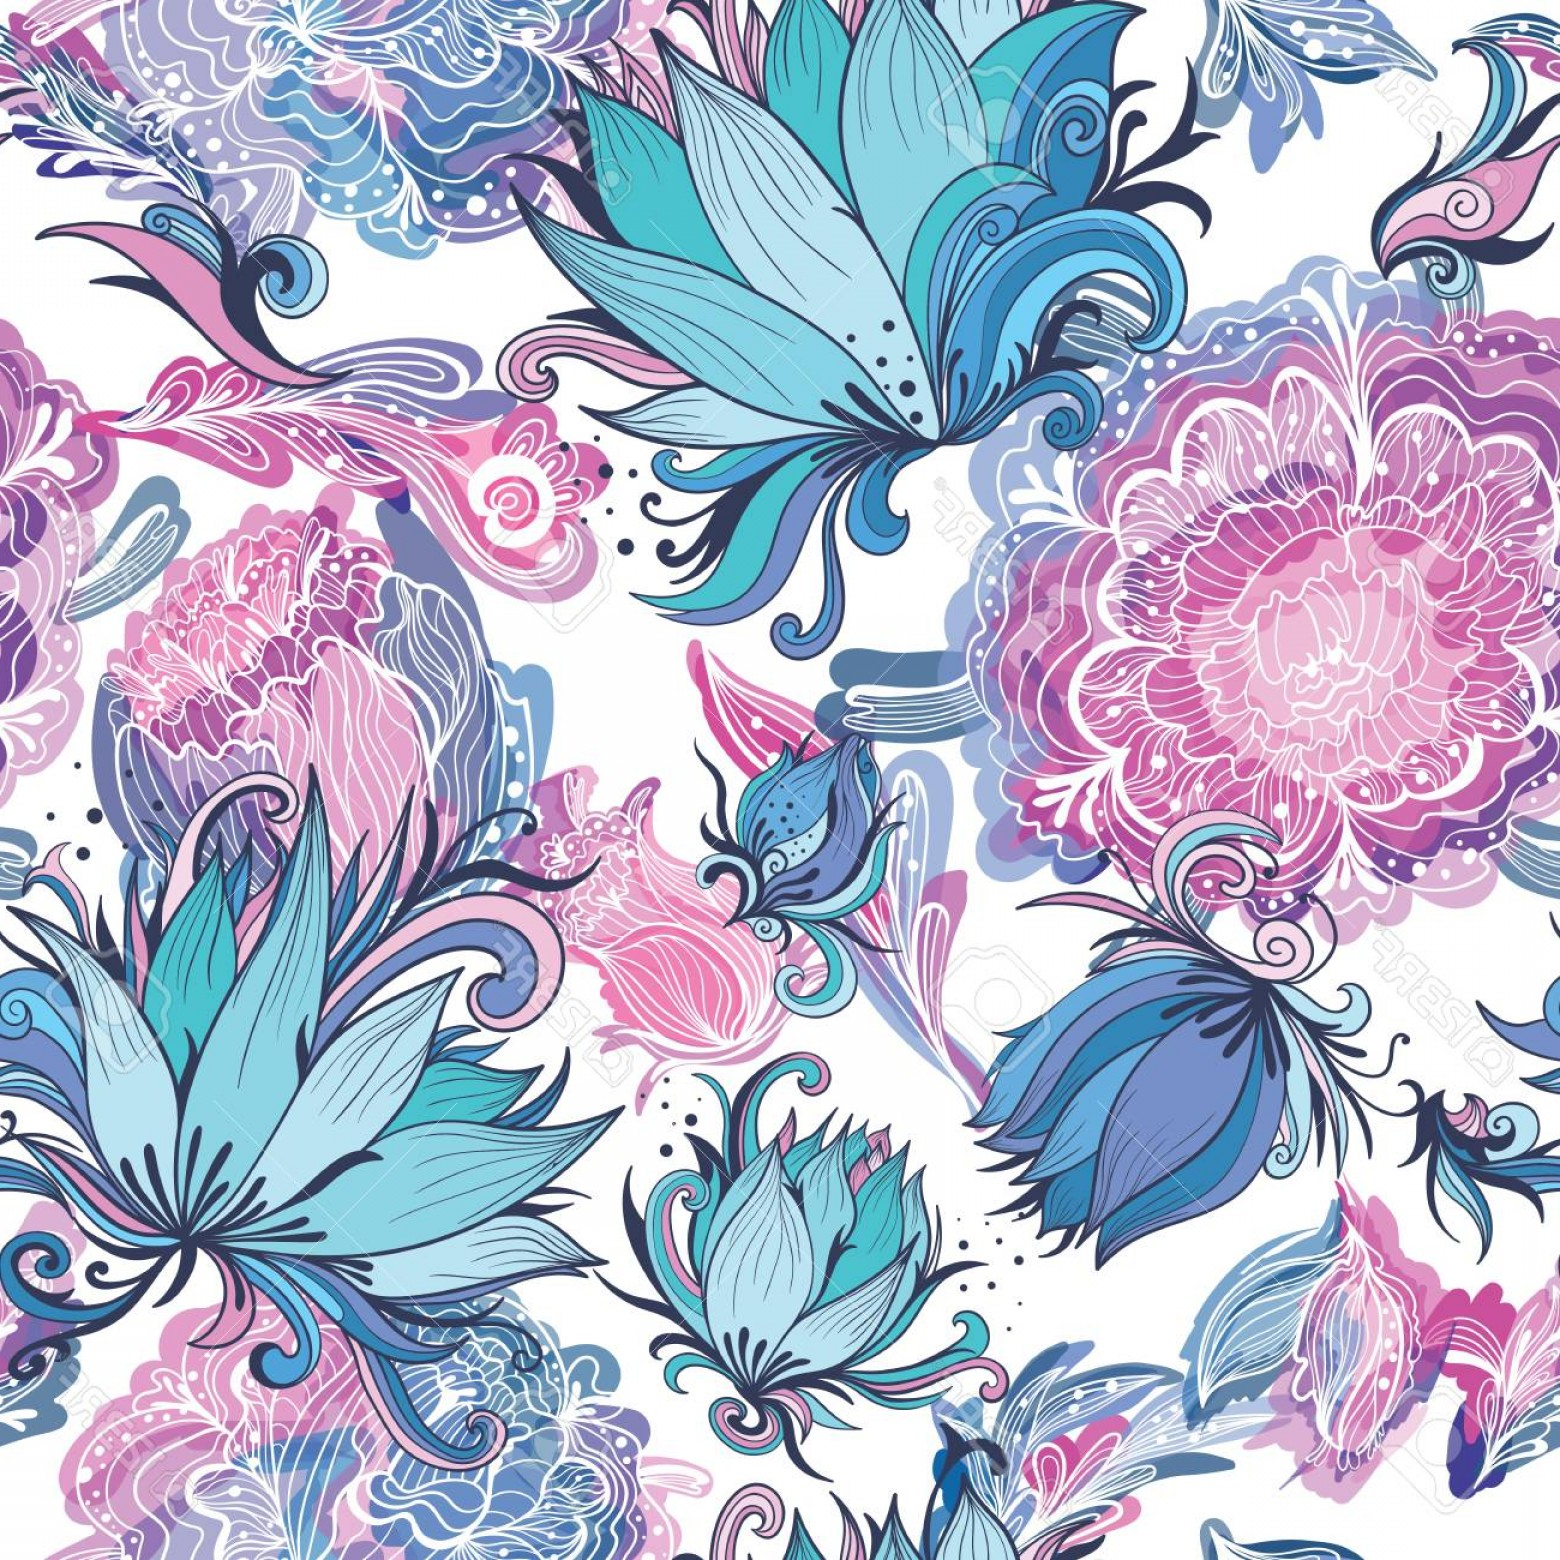 Turquoise Flower Vector: Photostock Vector Seamless Texture In Blue Pink Purple And Turquoise Colors With Lotus Lily And Peony Flowers